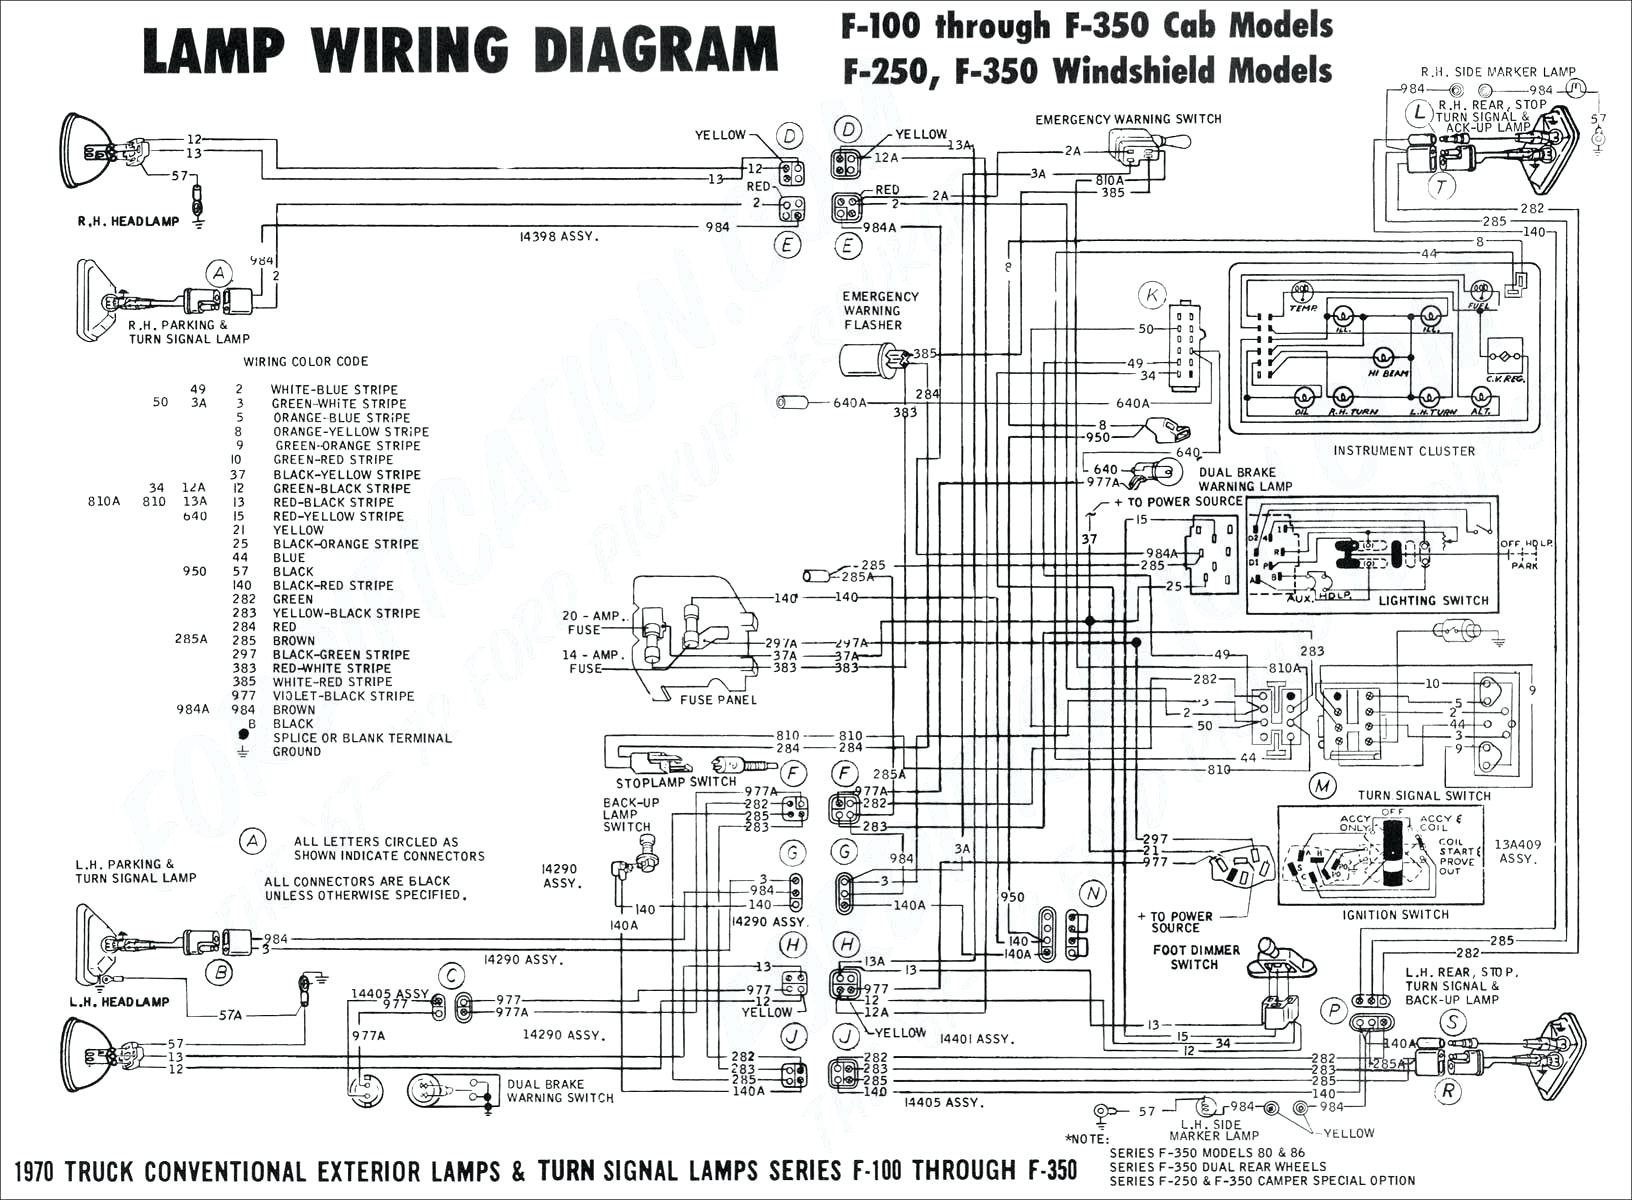 2005 ford f150 trailer wiring diagram Collection-Stop Turn Tail Light Wiring Diagram Beautiful 1979 ford F150 Tail Light Wiring Diagram Electrical Website 13-m